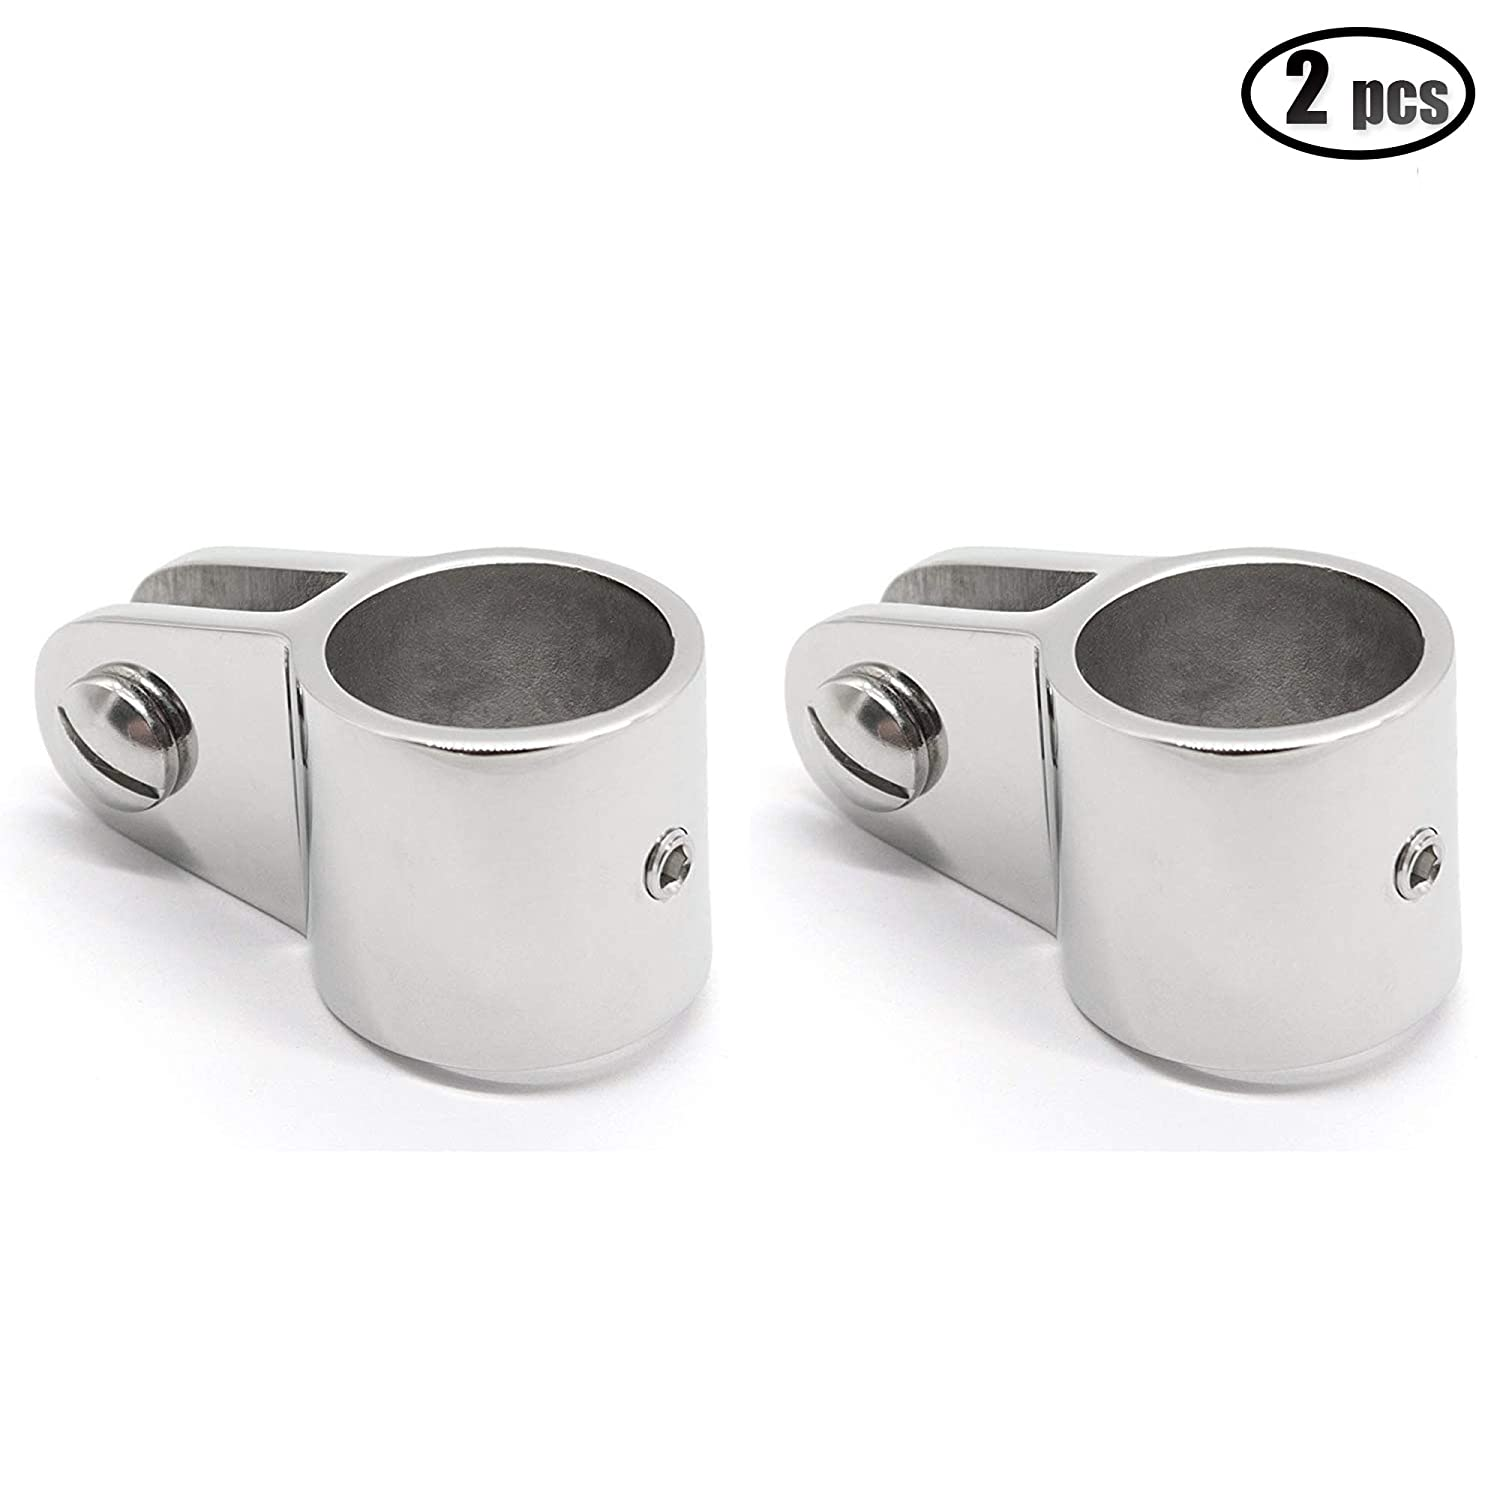 2 PCS Bimini Top Jaw Slide, Marine Boat Hardware Fitting Stainless Steel 1 inch 26mm iztor